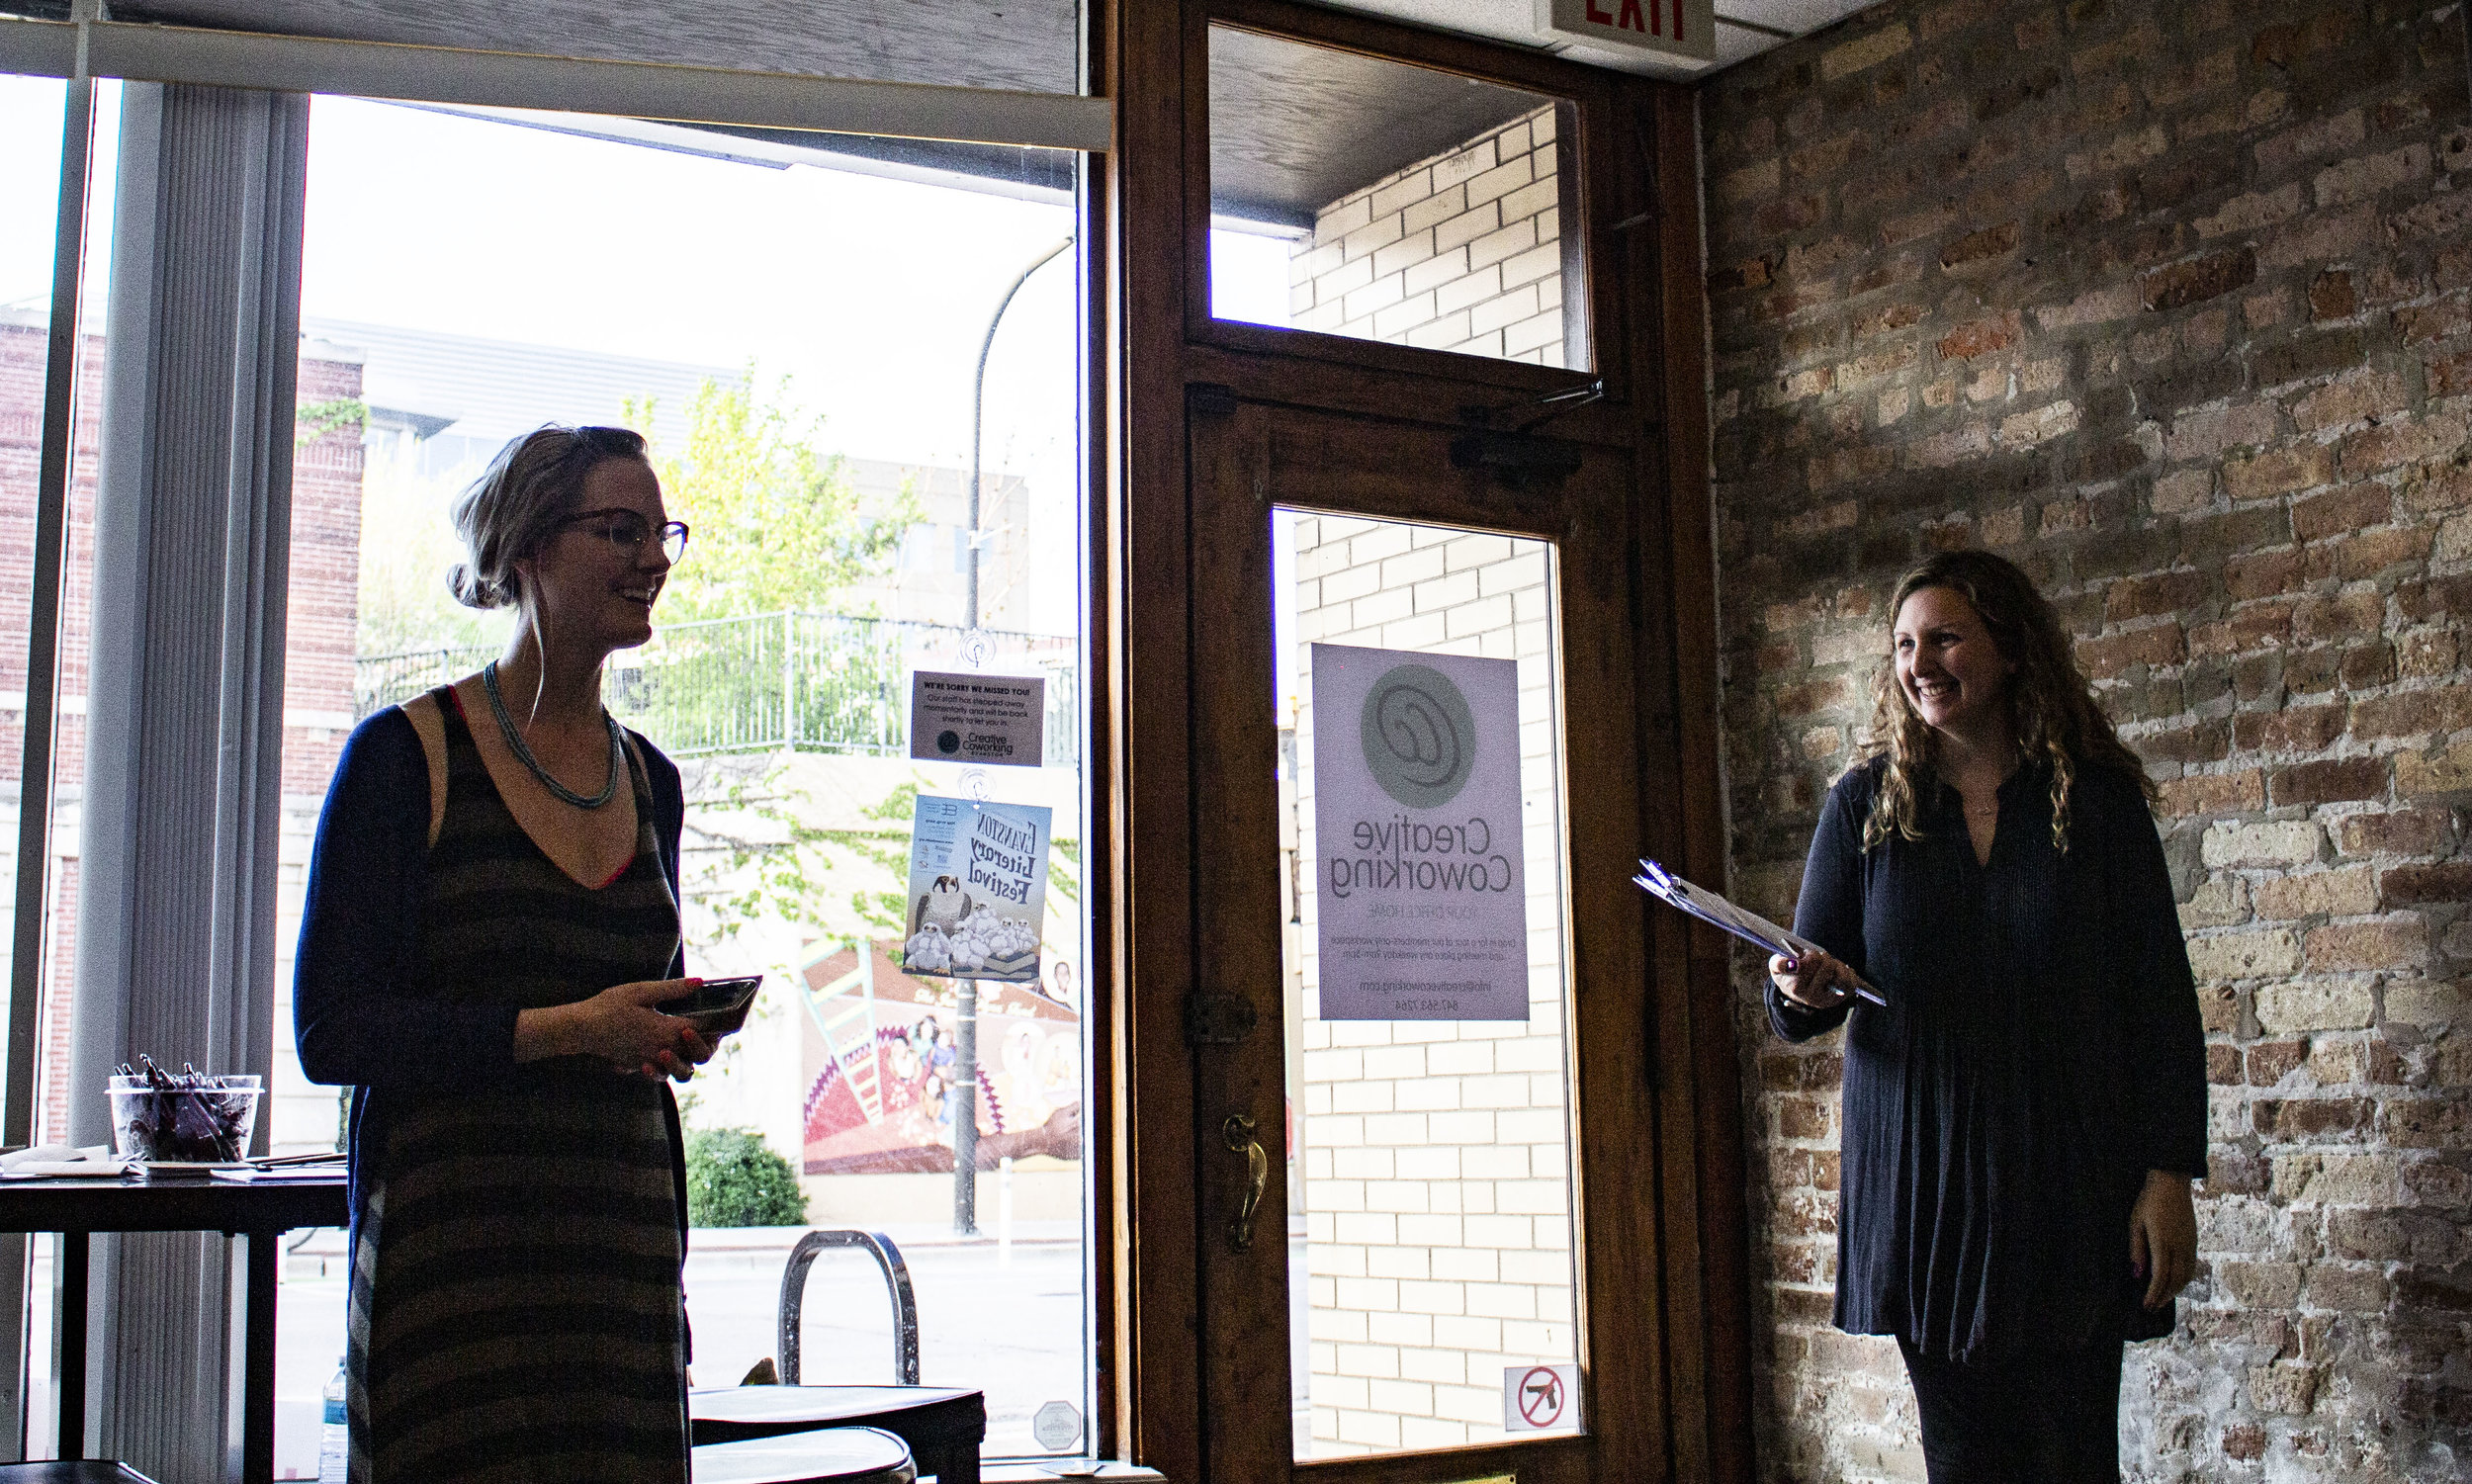 Sarah Ashley and Gina DiPonio introduce the Writer's Studio at the University of Chicago Graham School open mic at Creative Coworking.